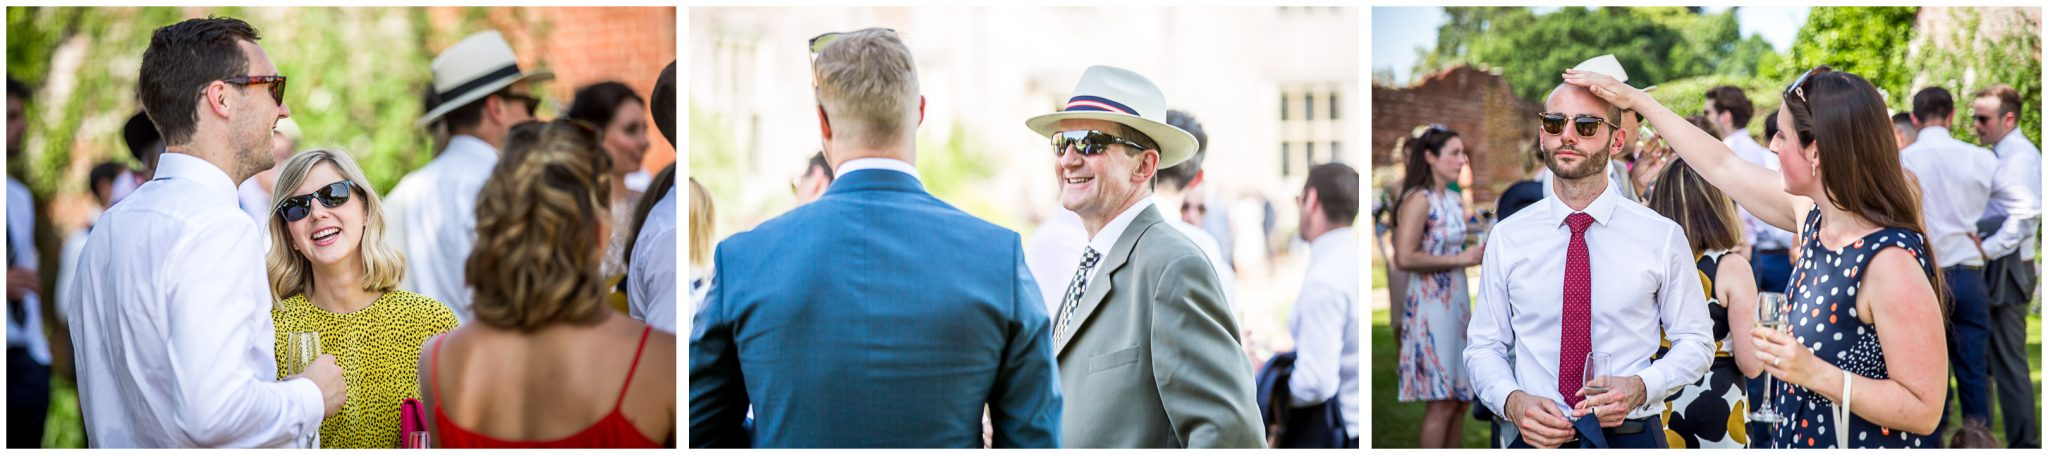 Candid guest photographs at wedding reception